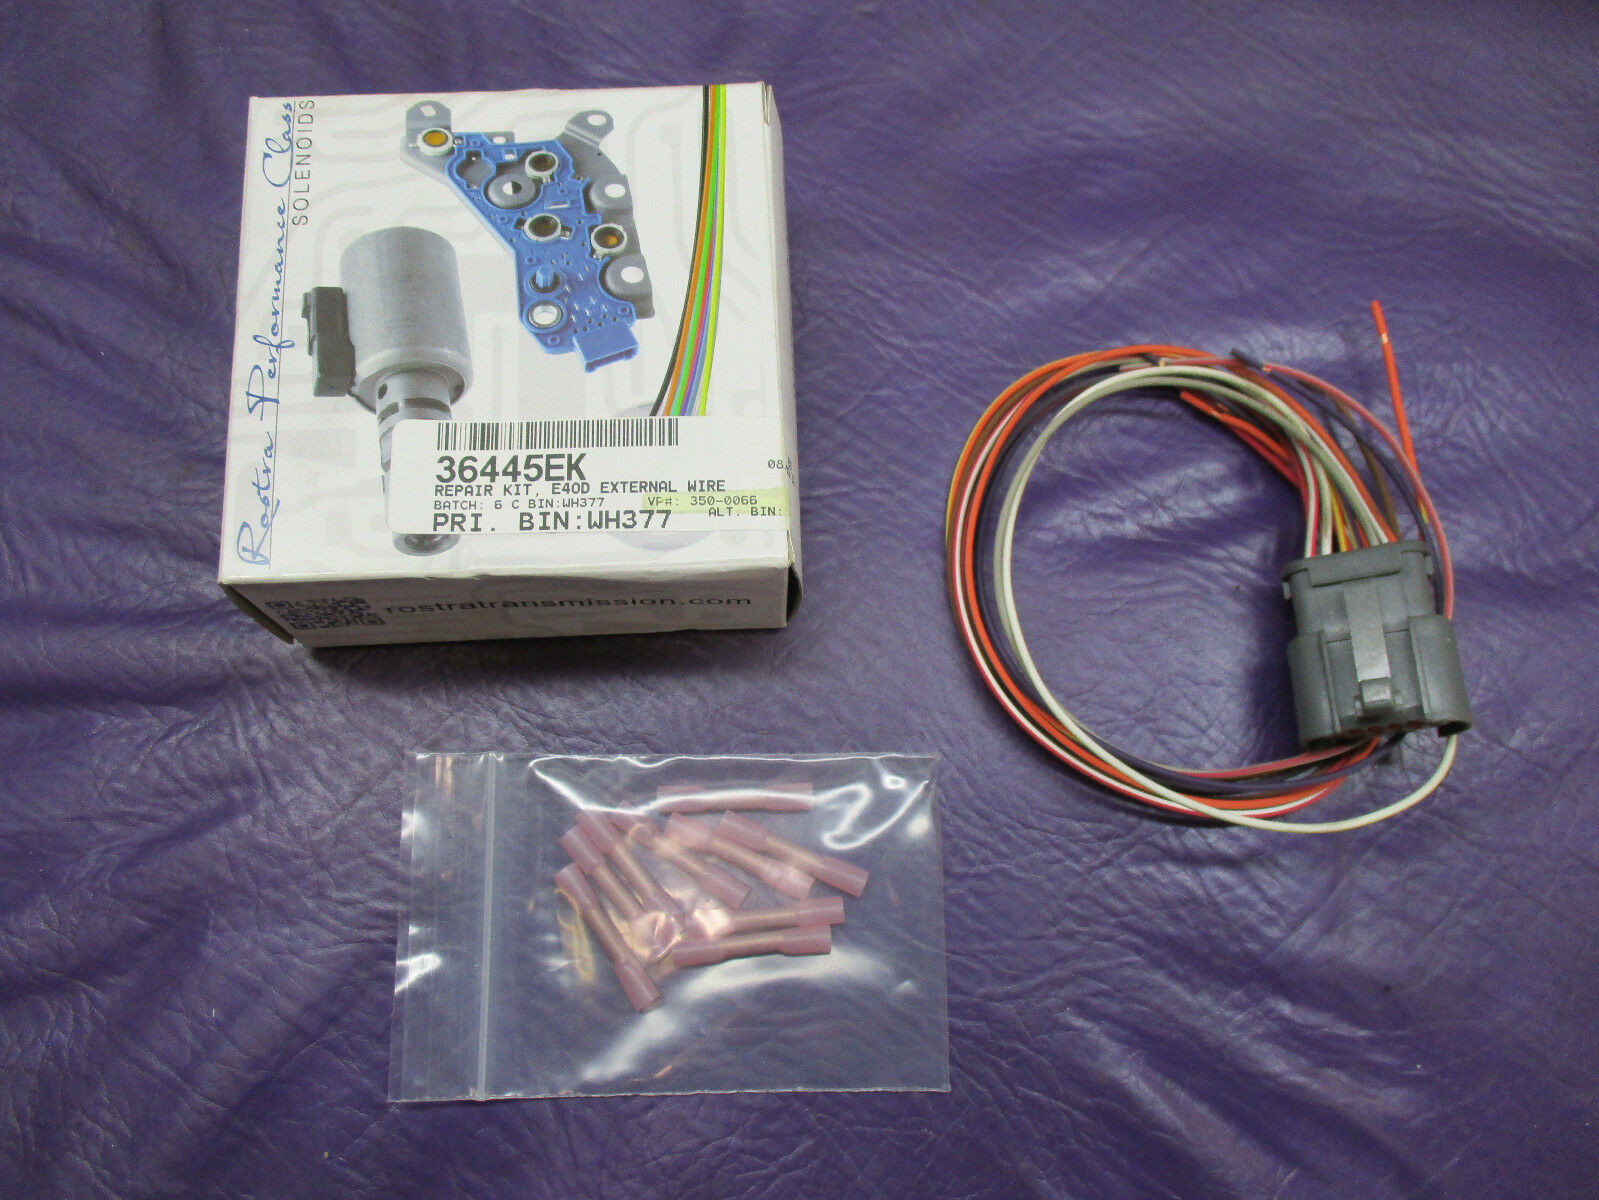 hight resolution of ford e4od transmission external wire harness repair kit 1989 1994 36445ek 1 of 3